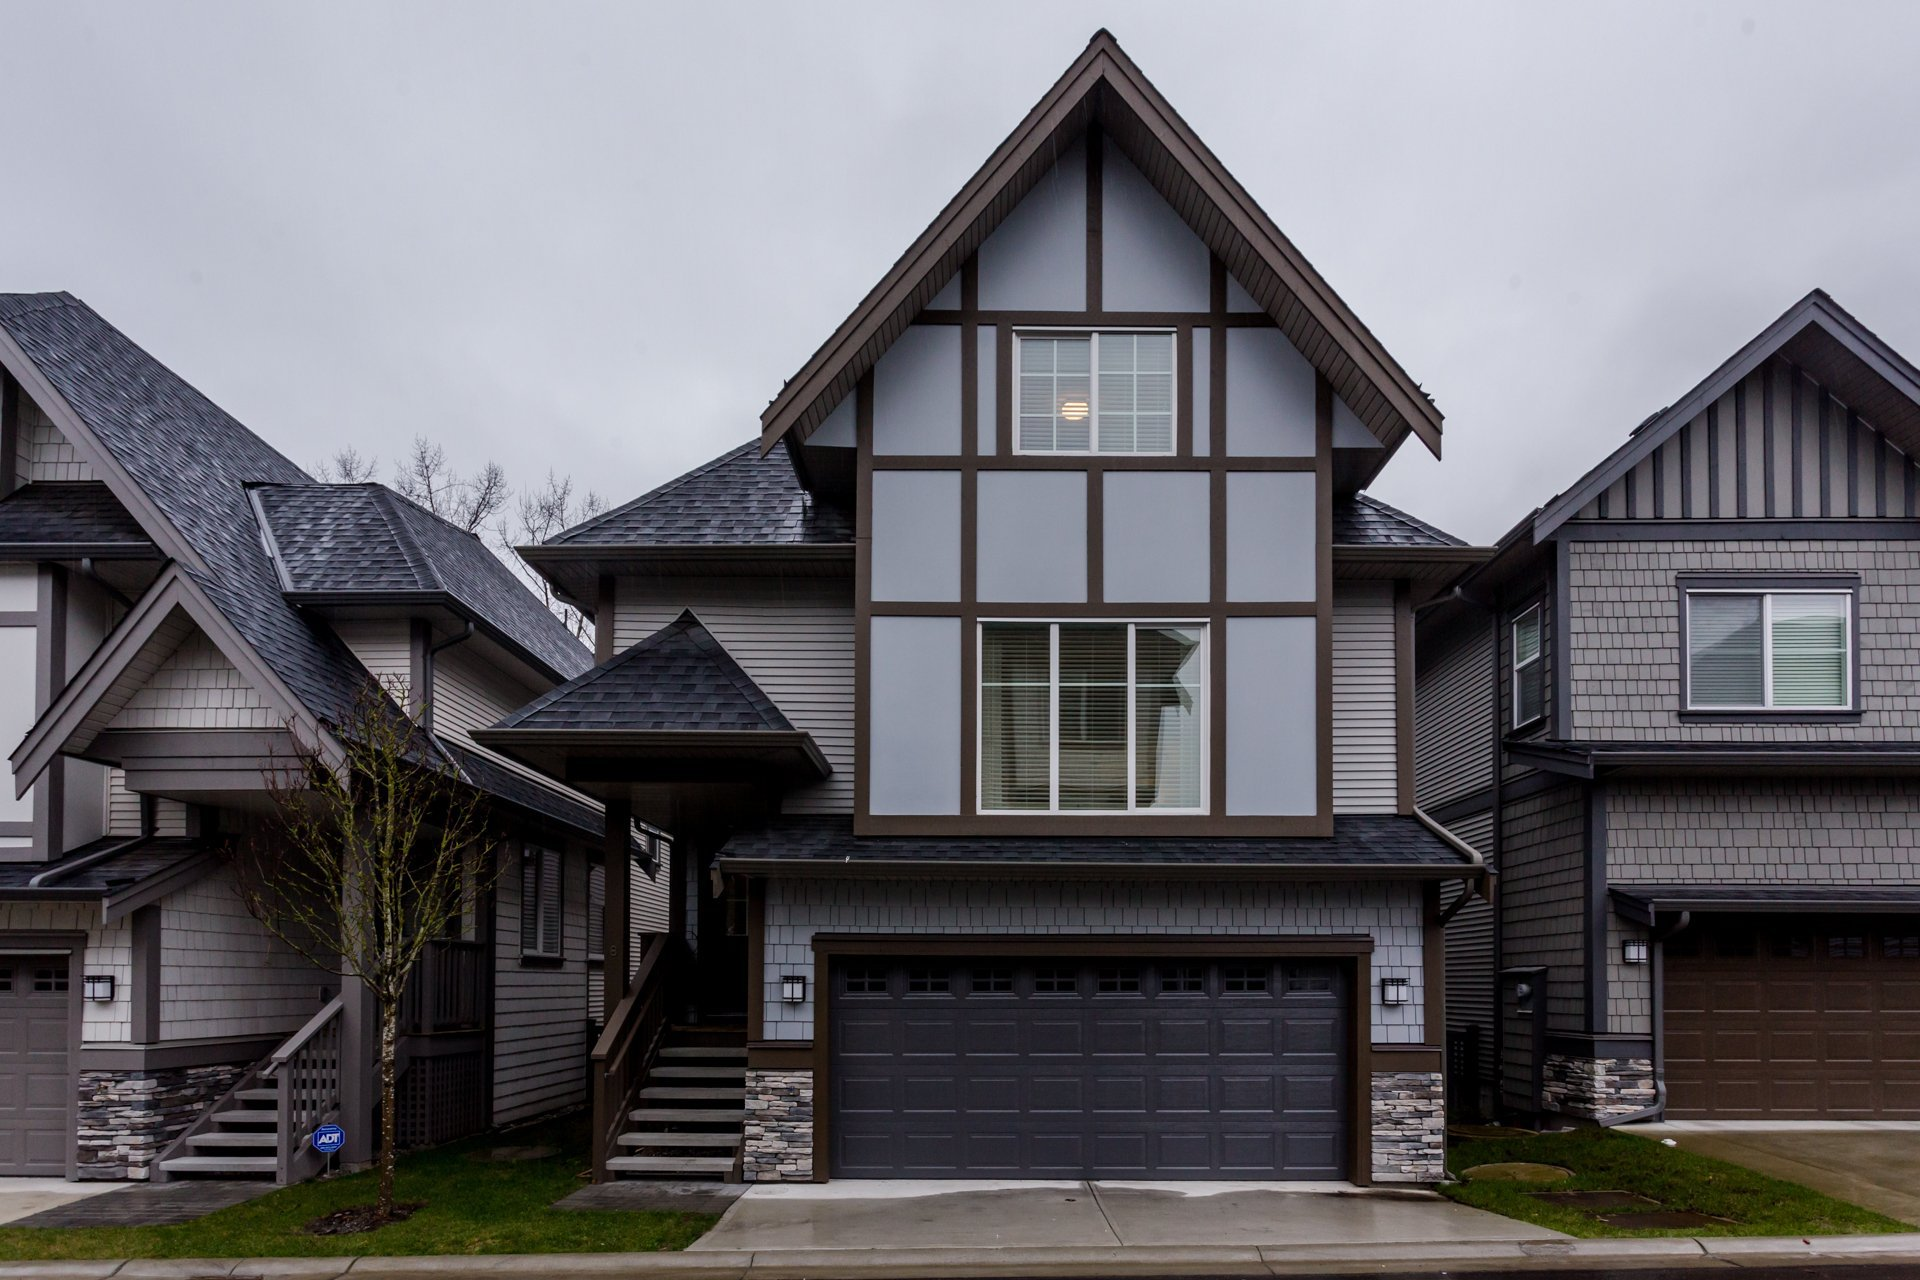 """Photo 3: Photos: 8 8217 204B Street in Langley: Willoughby Heights Townhouse for sale in """"EVERLY GREEN"""" : MLS®# R2236678"""